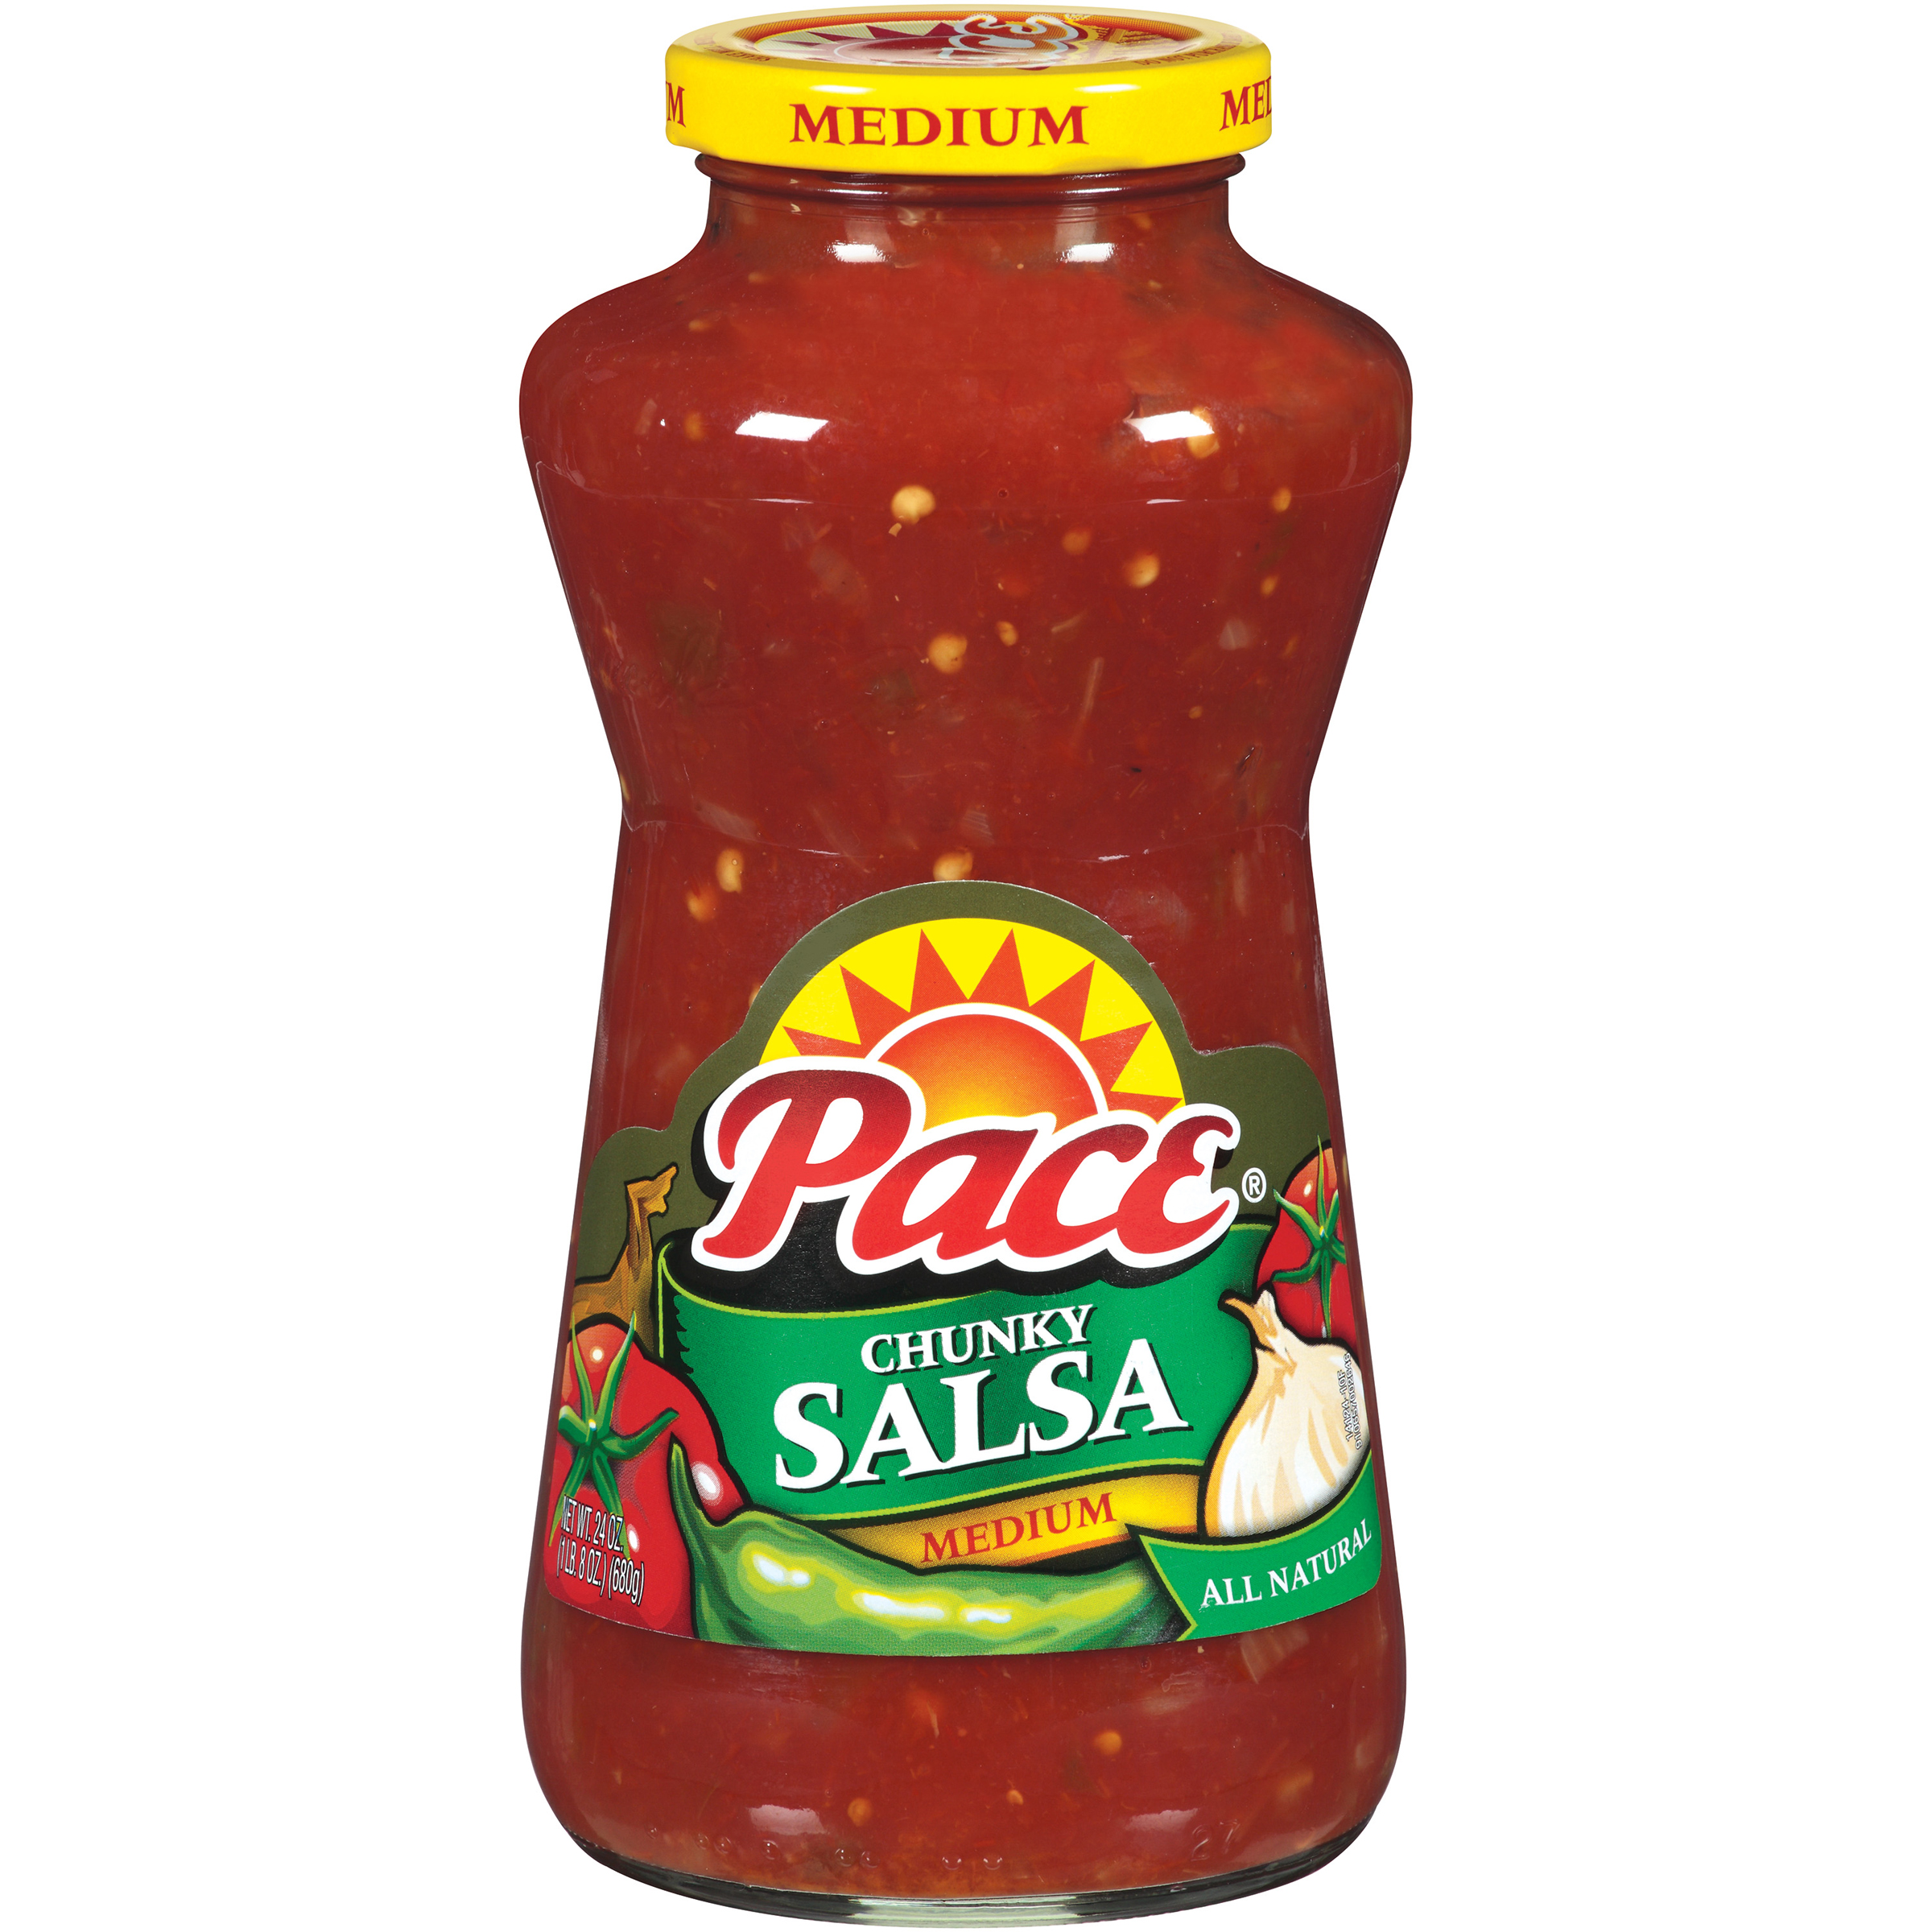 Pace Medium Chunky Salsa 24oz